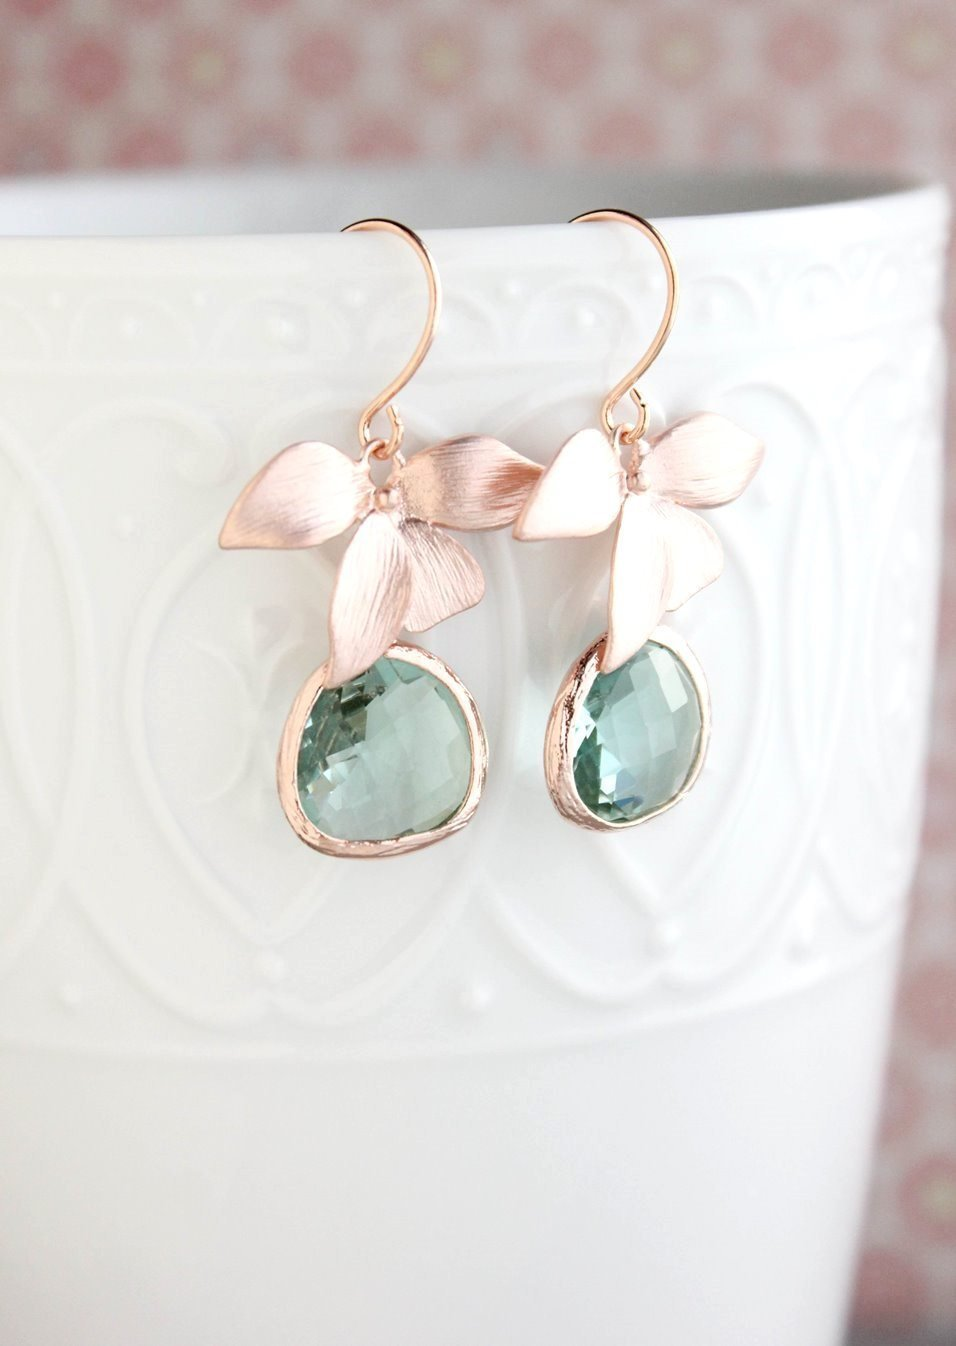 Rose Gold Orchid Earrings - Blue green